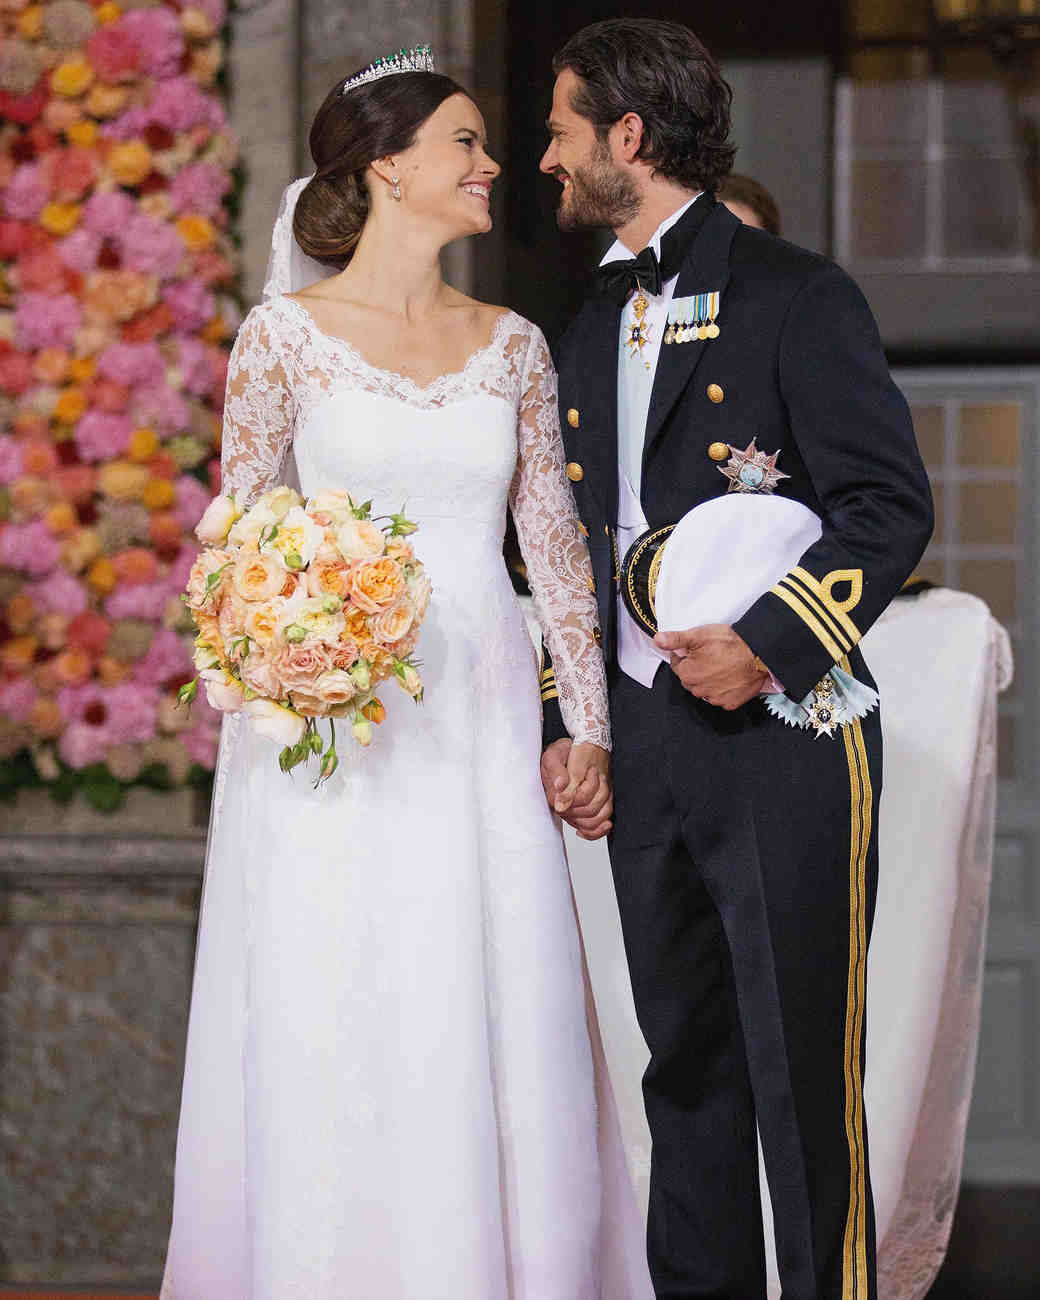 The Best Royal Wedding Dresses Of All Time Martha Stewart - Lady worst wedding guest history